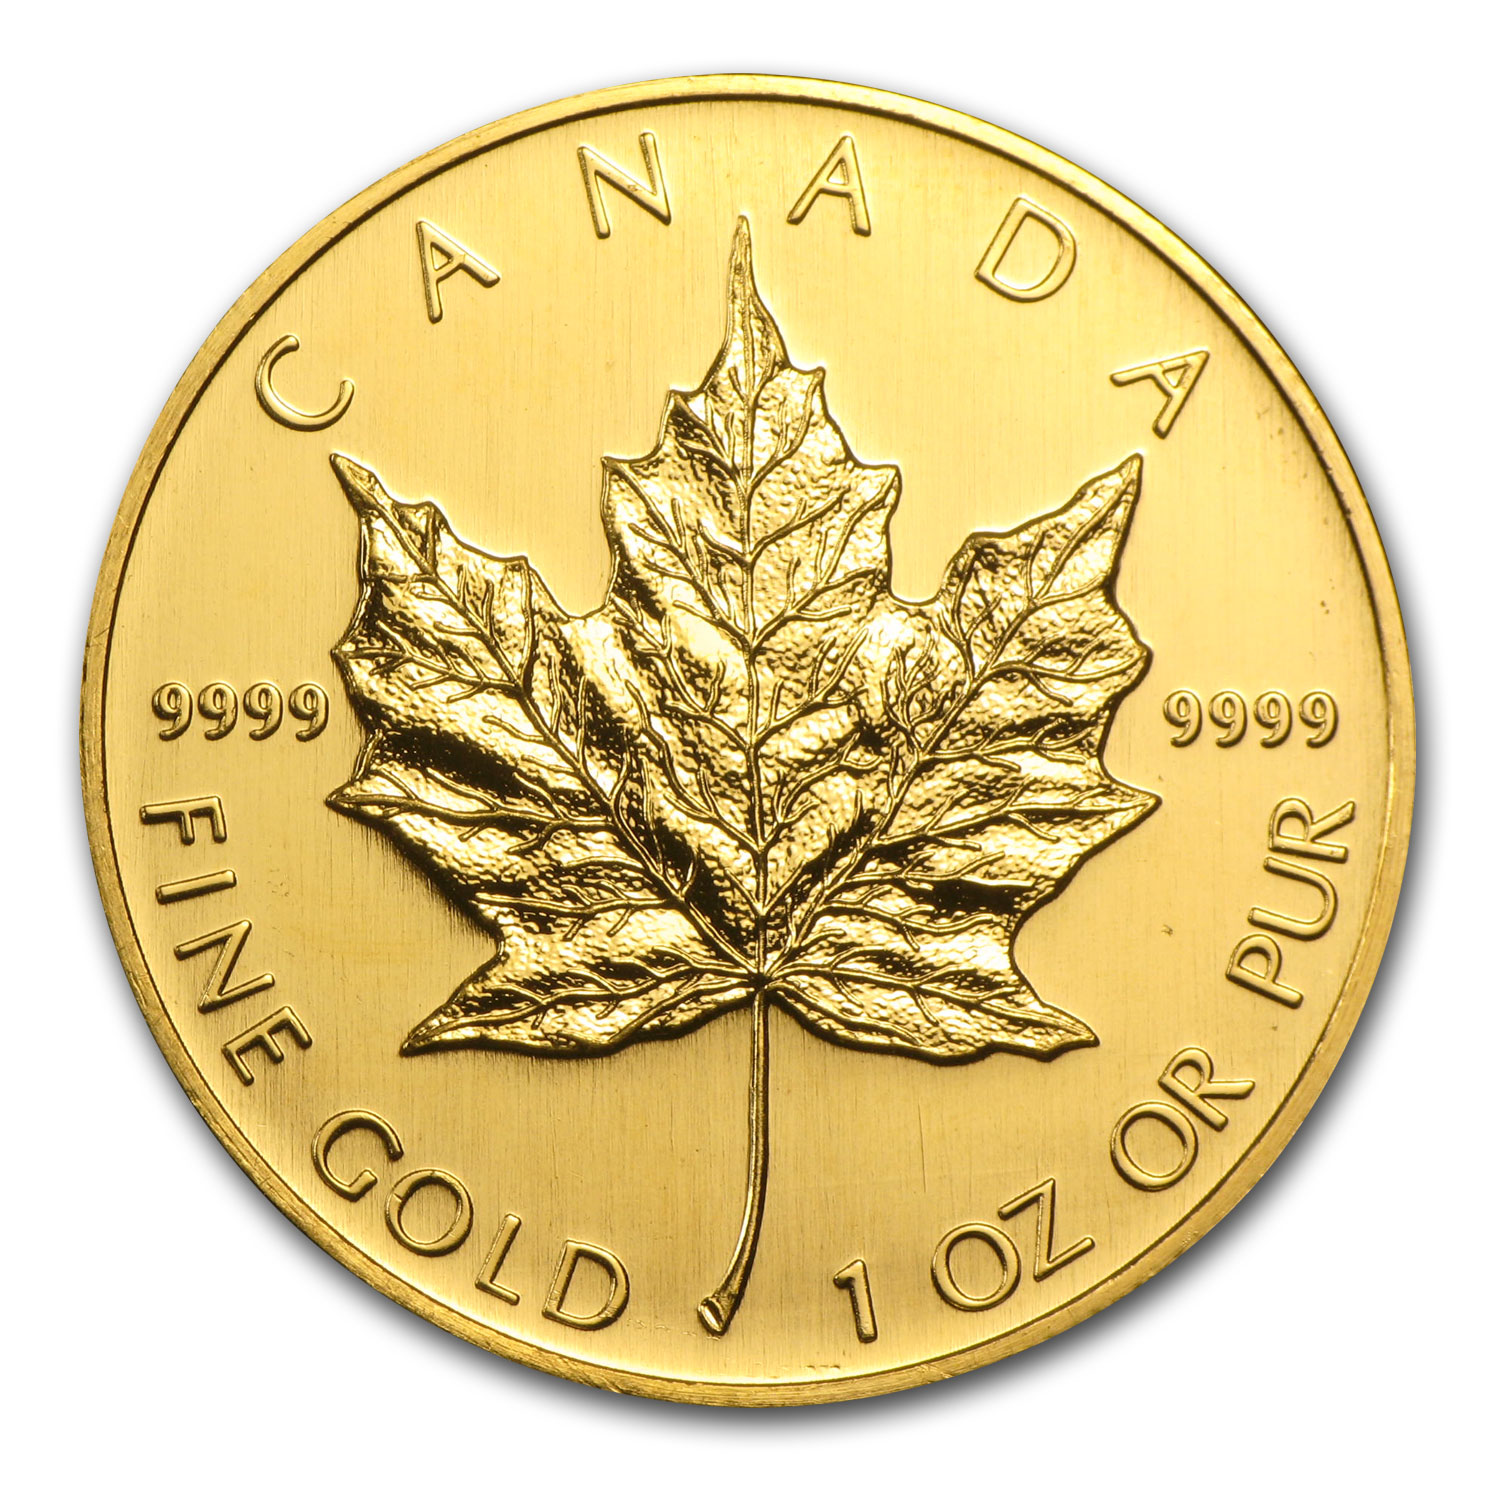 2005 1 oz Gold Canadian Maple Leaf - Brilliant Uncirculated